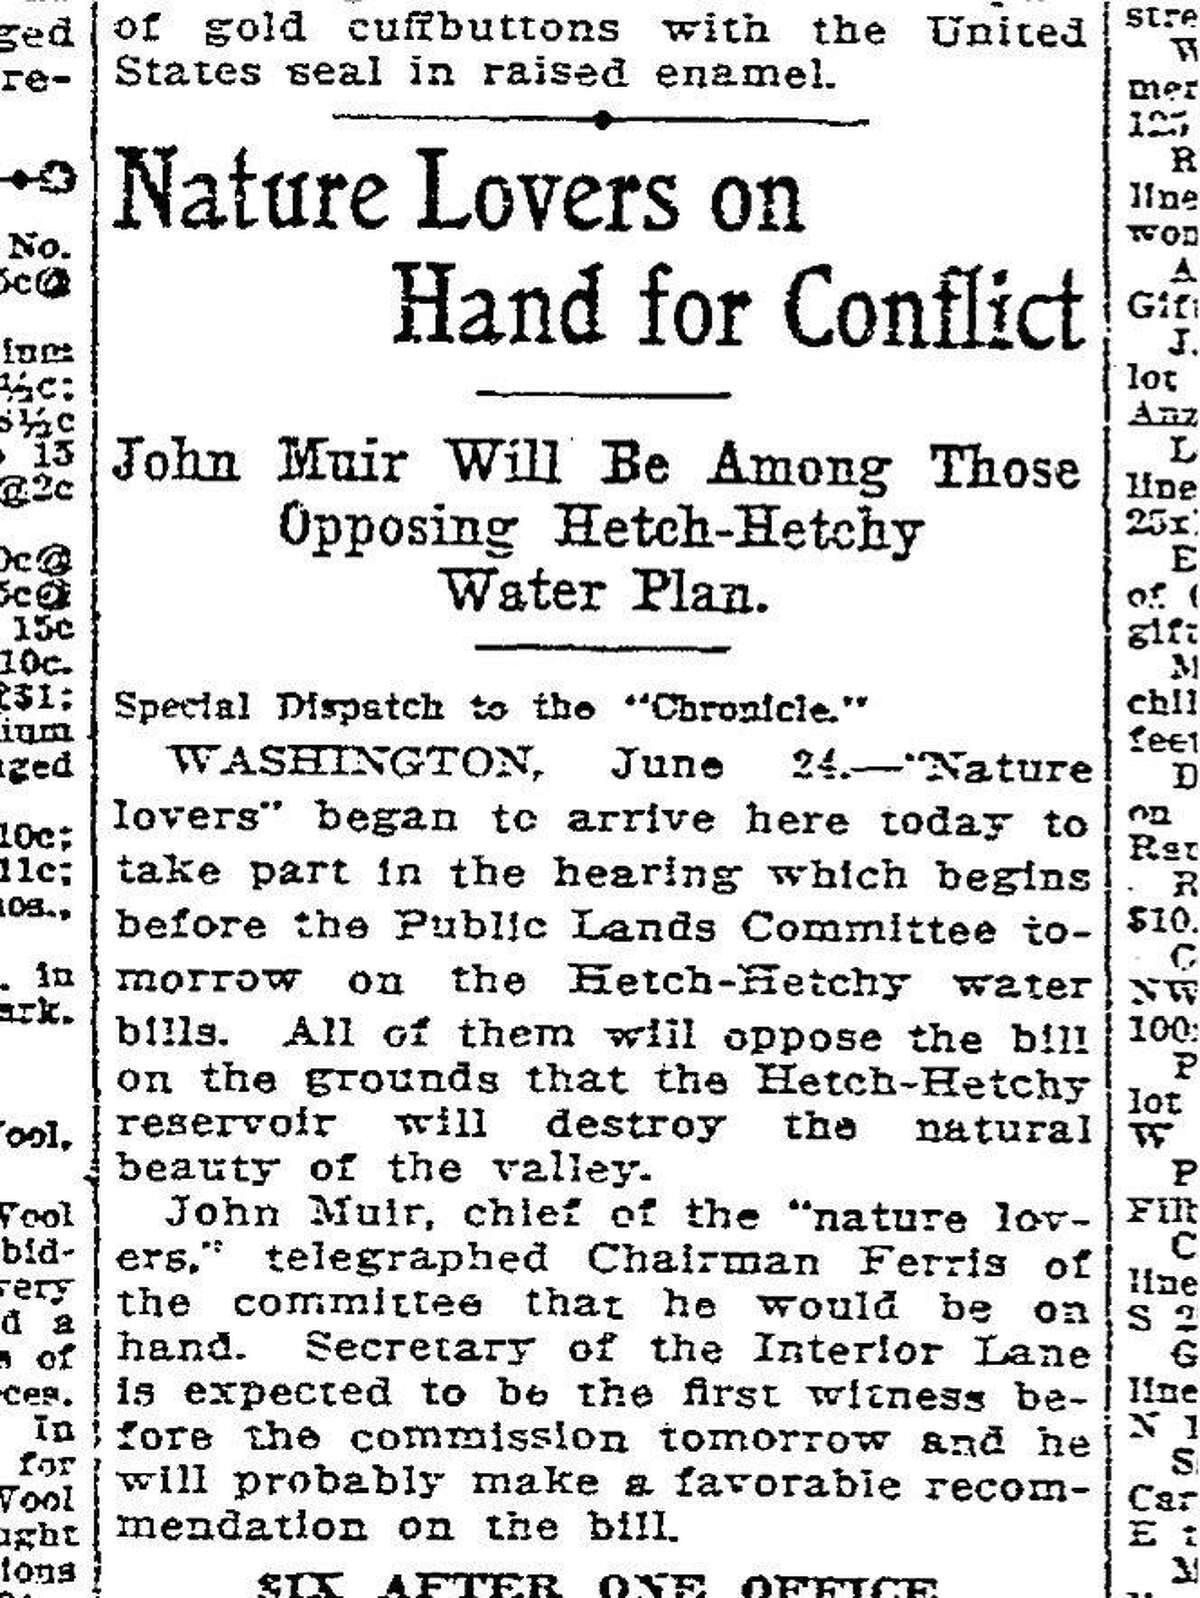 June 25,, 1913 article on the John Muir and the Sierra Club fighting to prevent the creation of Hetch Hetchy Reservoir on National Park land